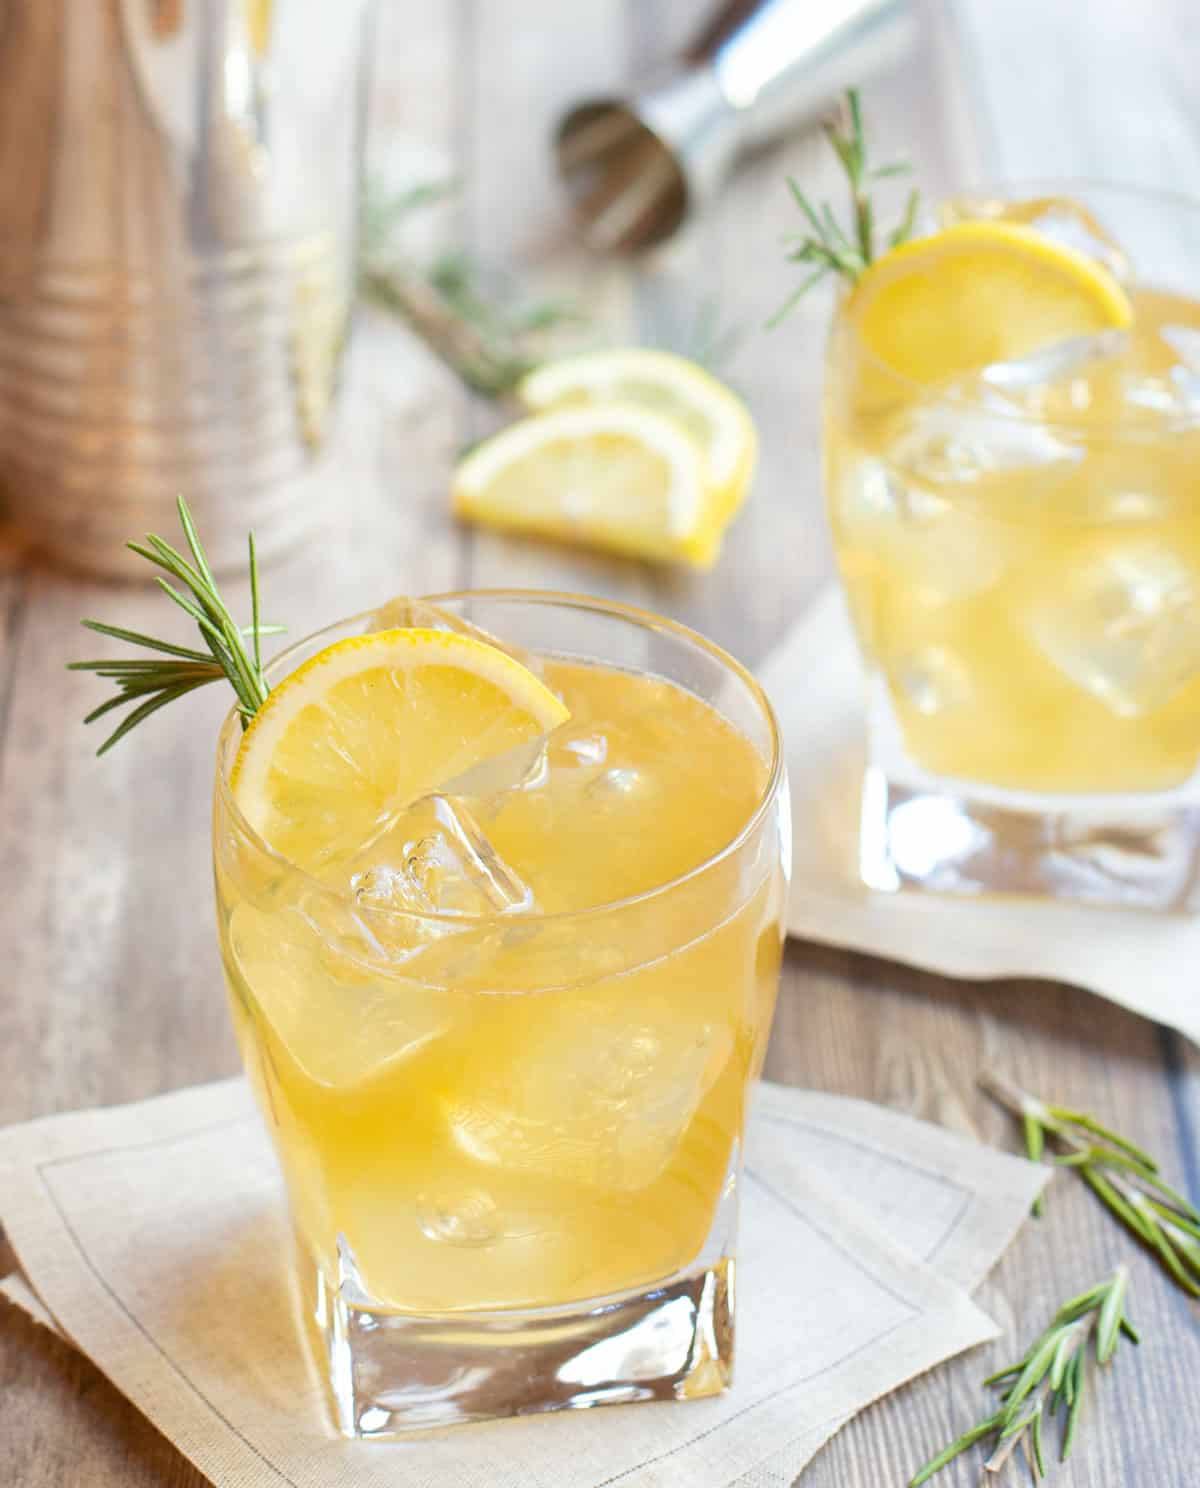 Lemon Ginger Bourbon Cocktail in a glass with a slice of lemon